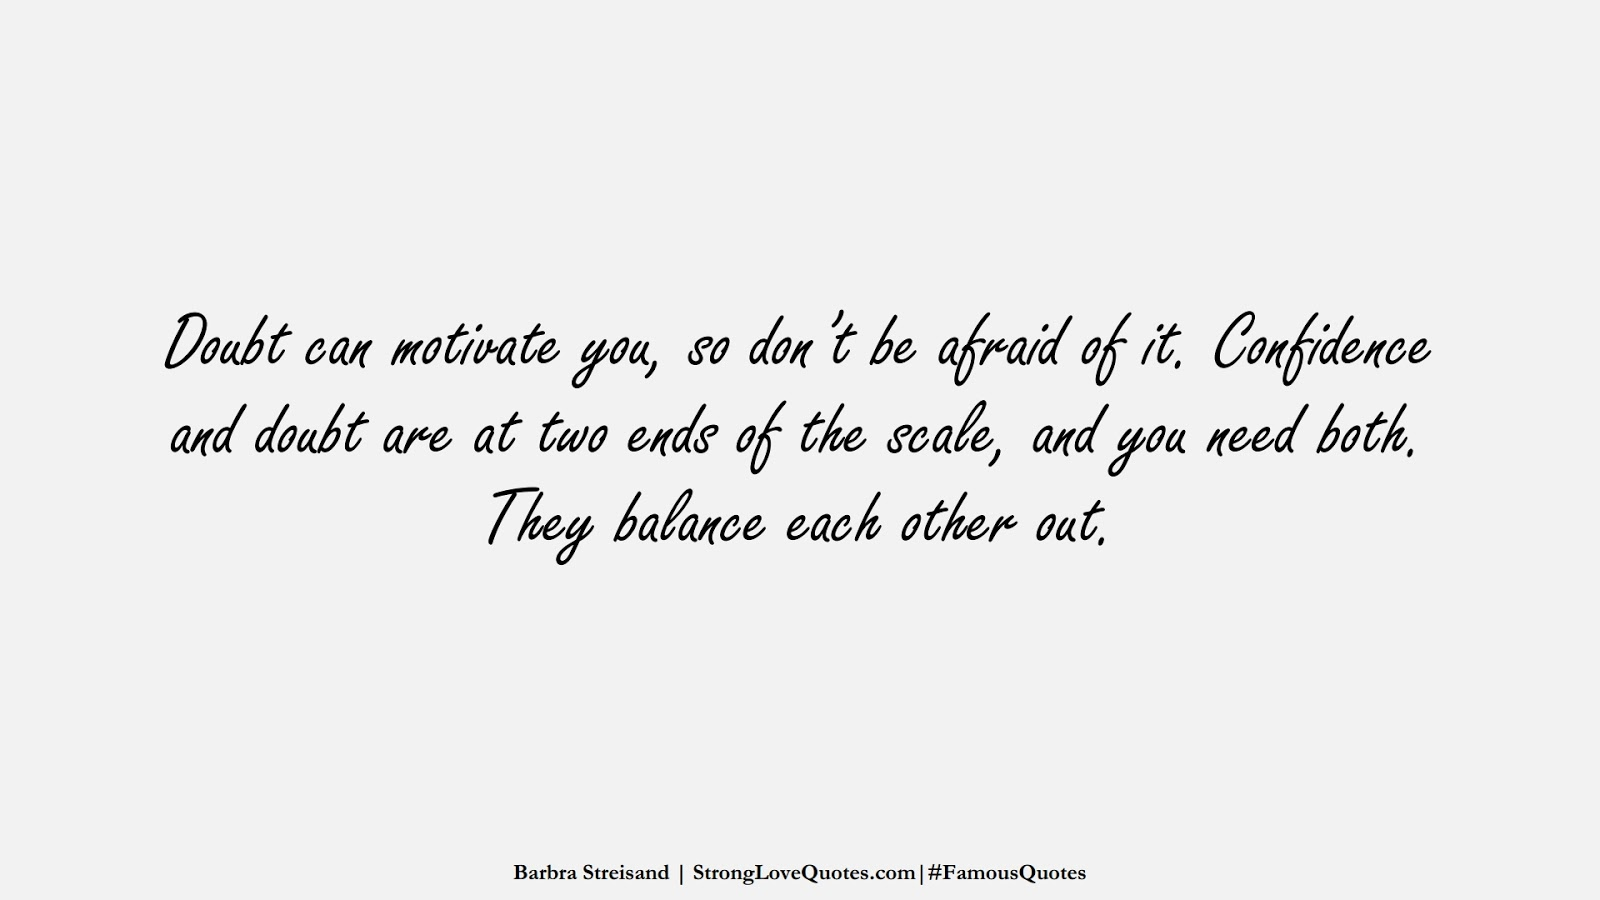 Doubt can motivate you, so don't be afraid of it. Confidence and doubt are at two ends of the scale, and you need both. They balance each other out. (Barbra Streisand);  #FamousQuotes